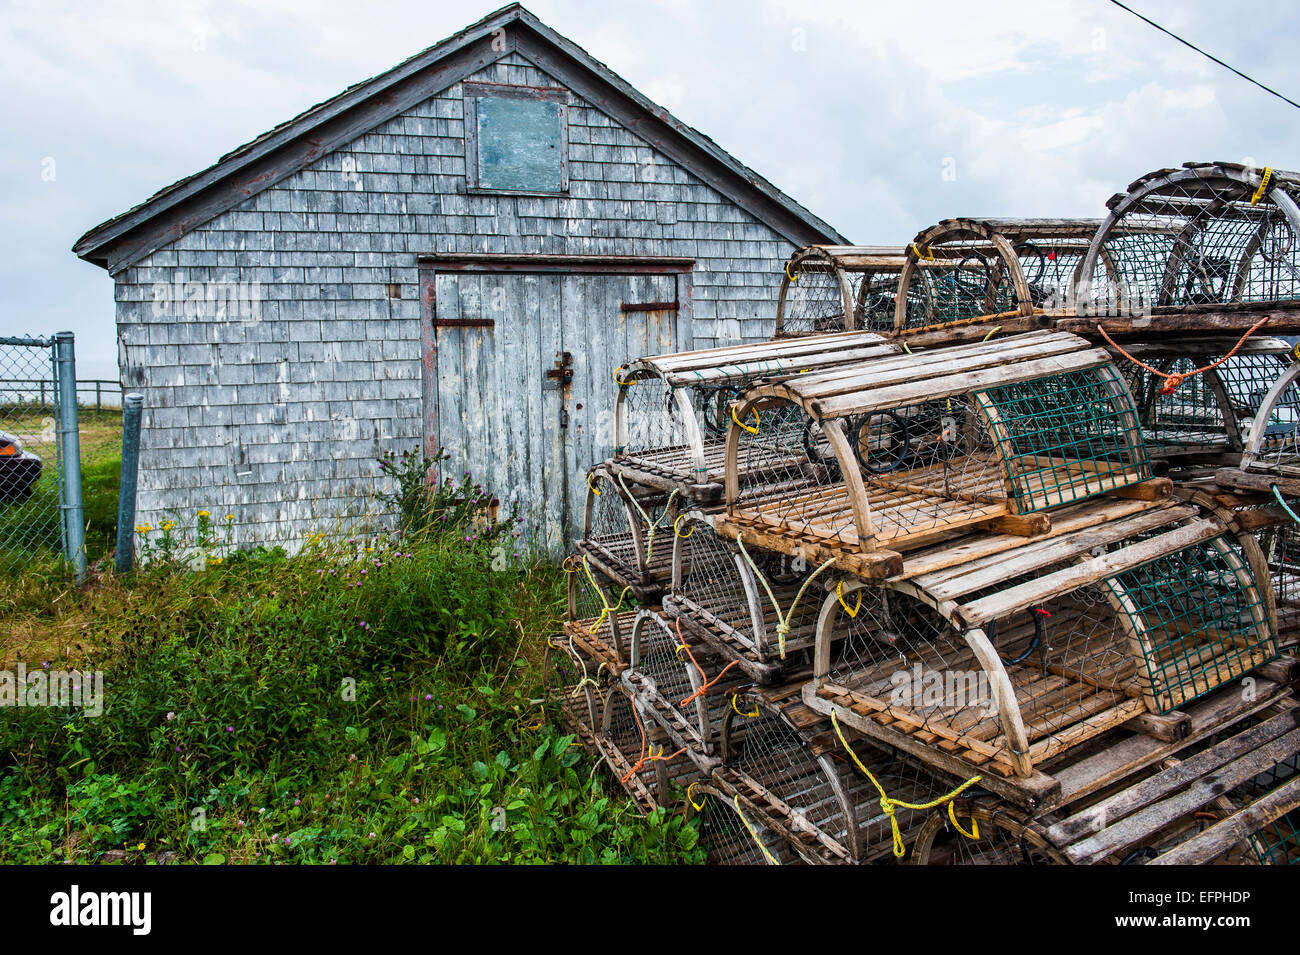 Fish traps in front of a shingle hut in Neils Harbour, Cape Breton Highlands NP, Cape Breton Island, Nova Scotia, - Stock Image